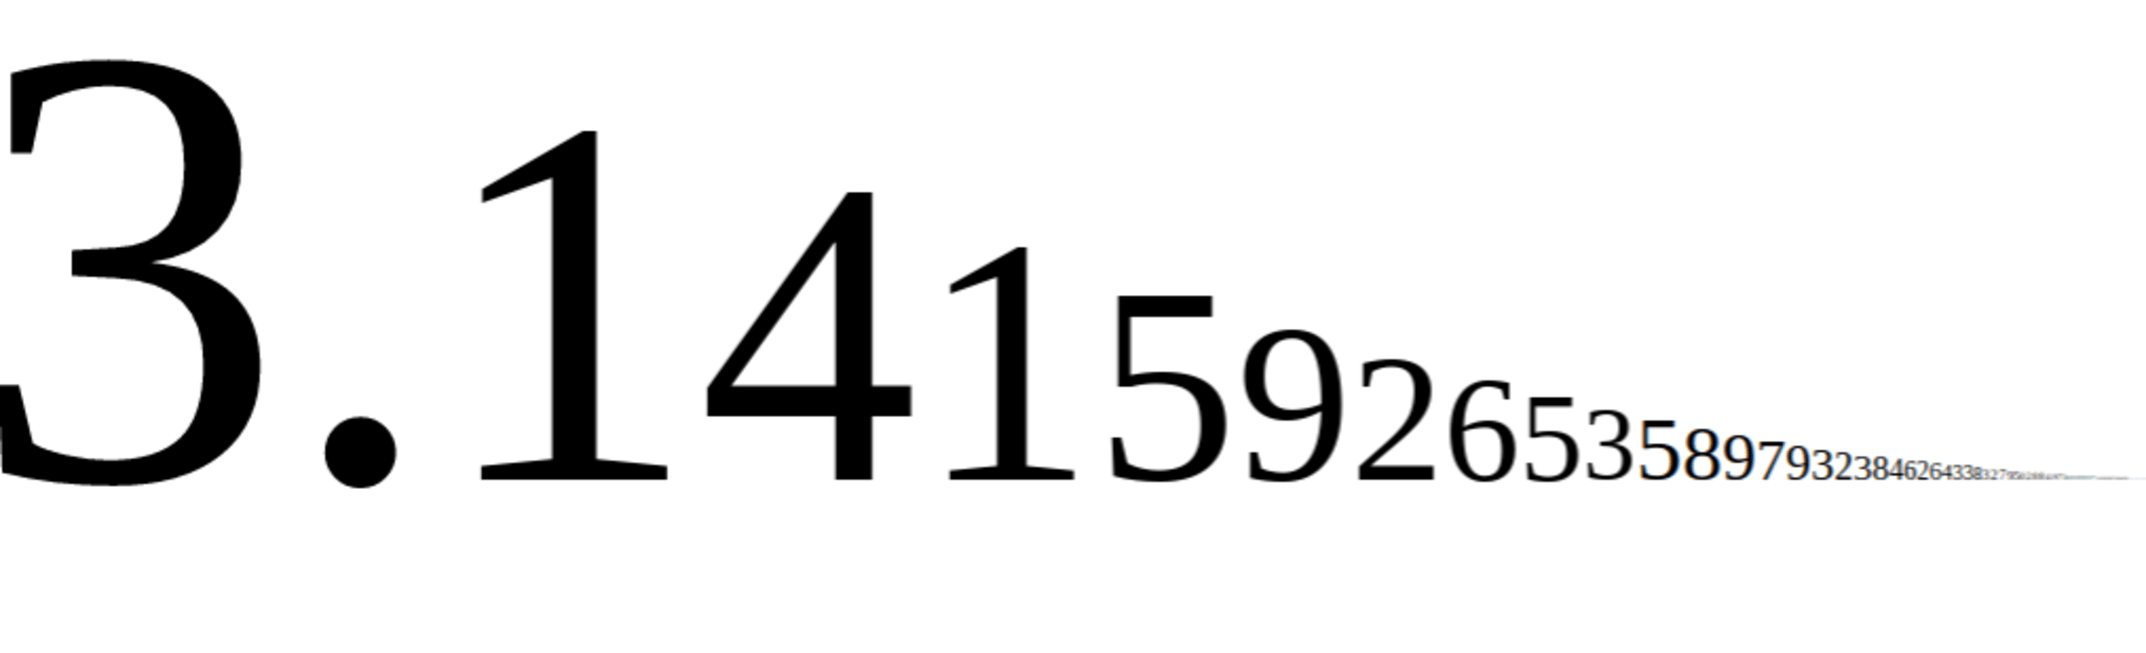 All you really need to know is that pi is a big, long number representing the ratio of the circumference of a circle to its diameter - it goes on for ever, but 3.1 is good enough